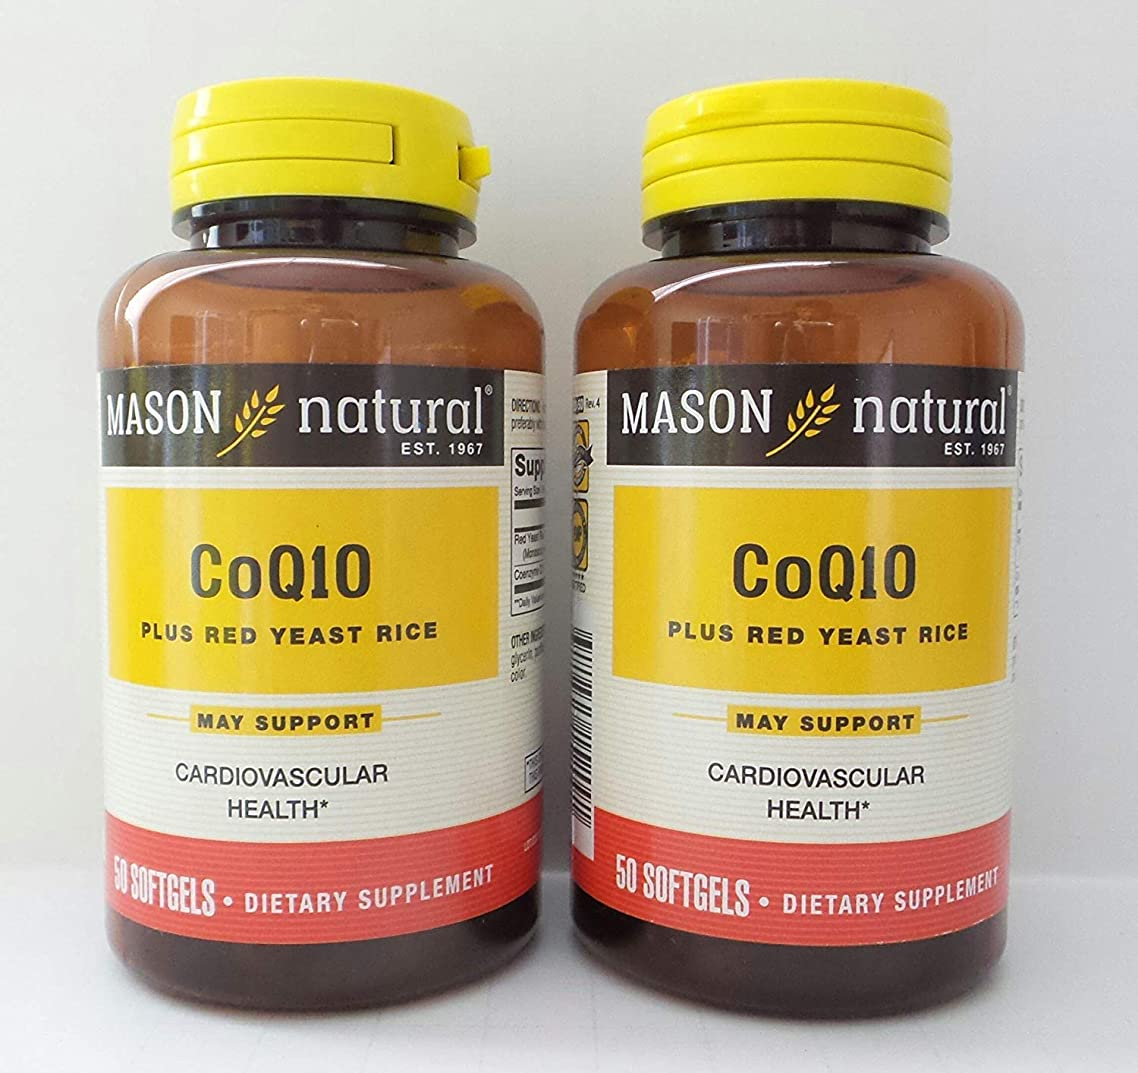 Mason Natural Co Q-10 Plus Red Yeast Rice - 50 Softgels, Pack of 2